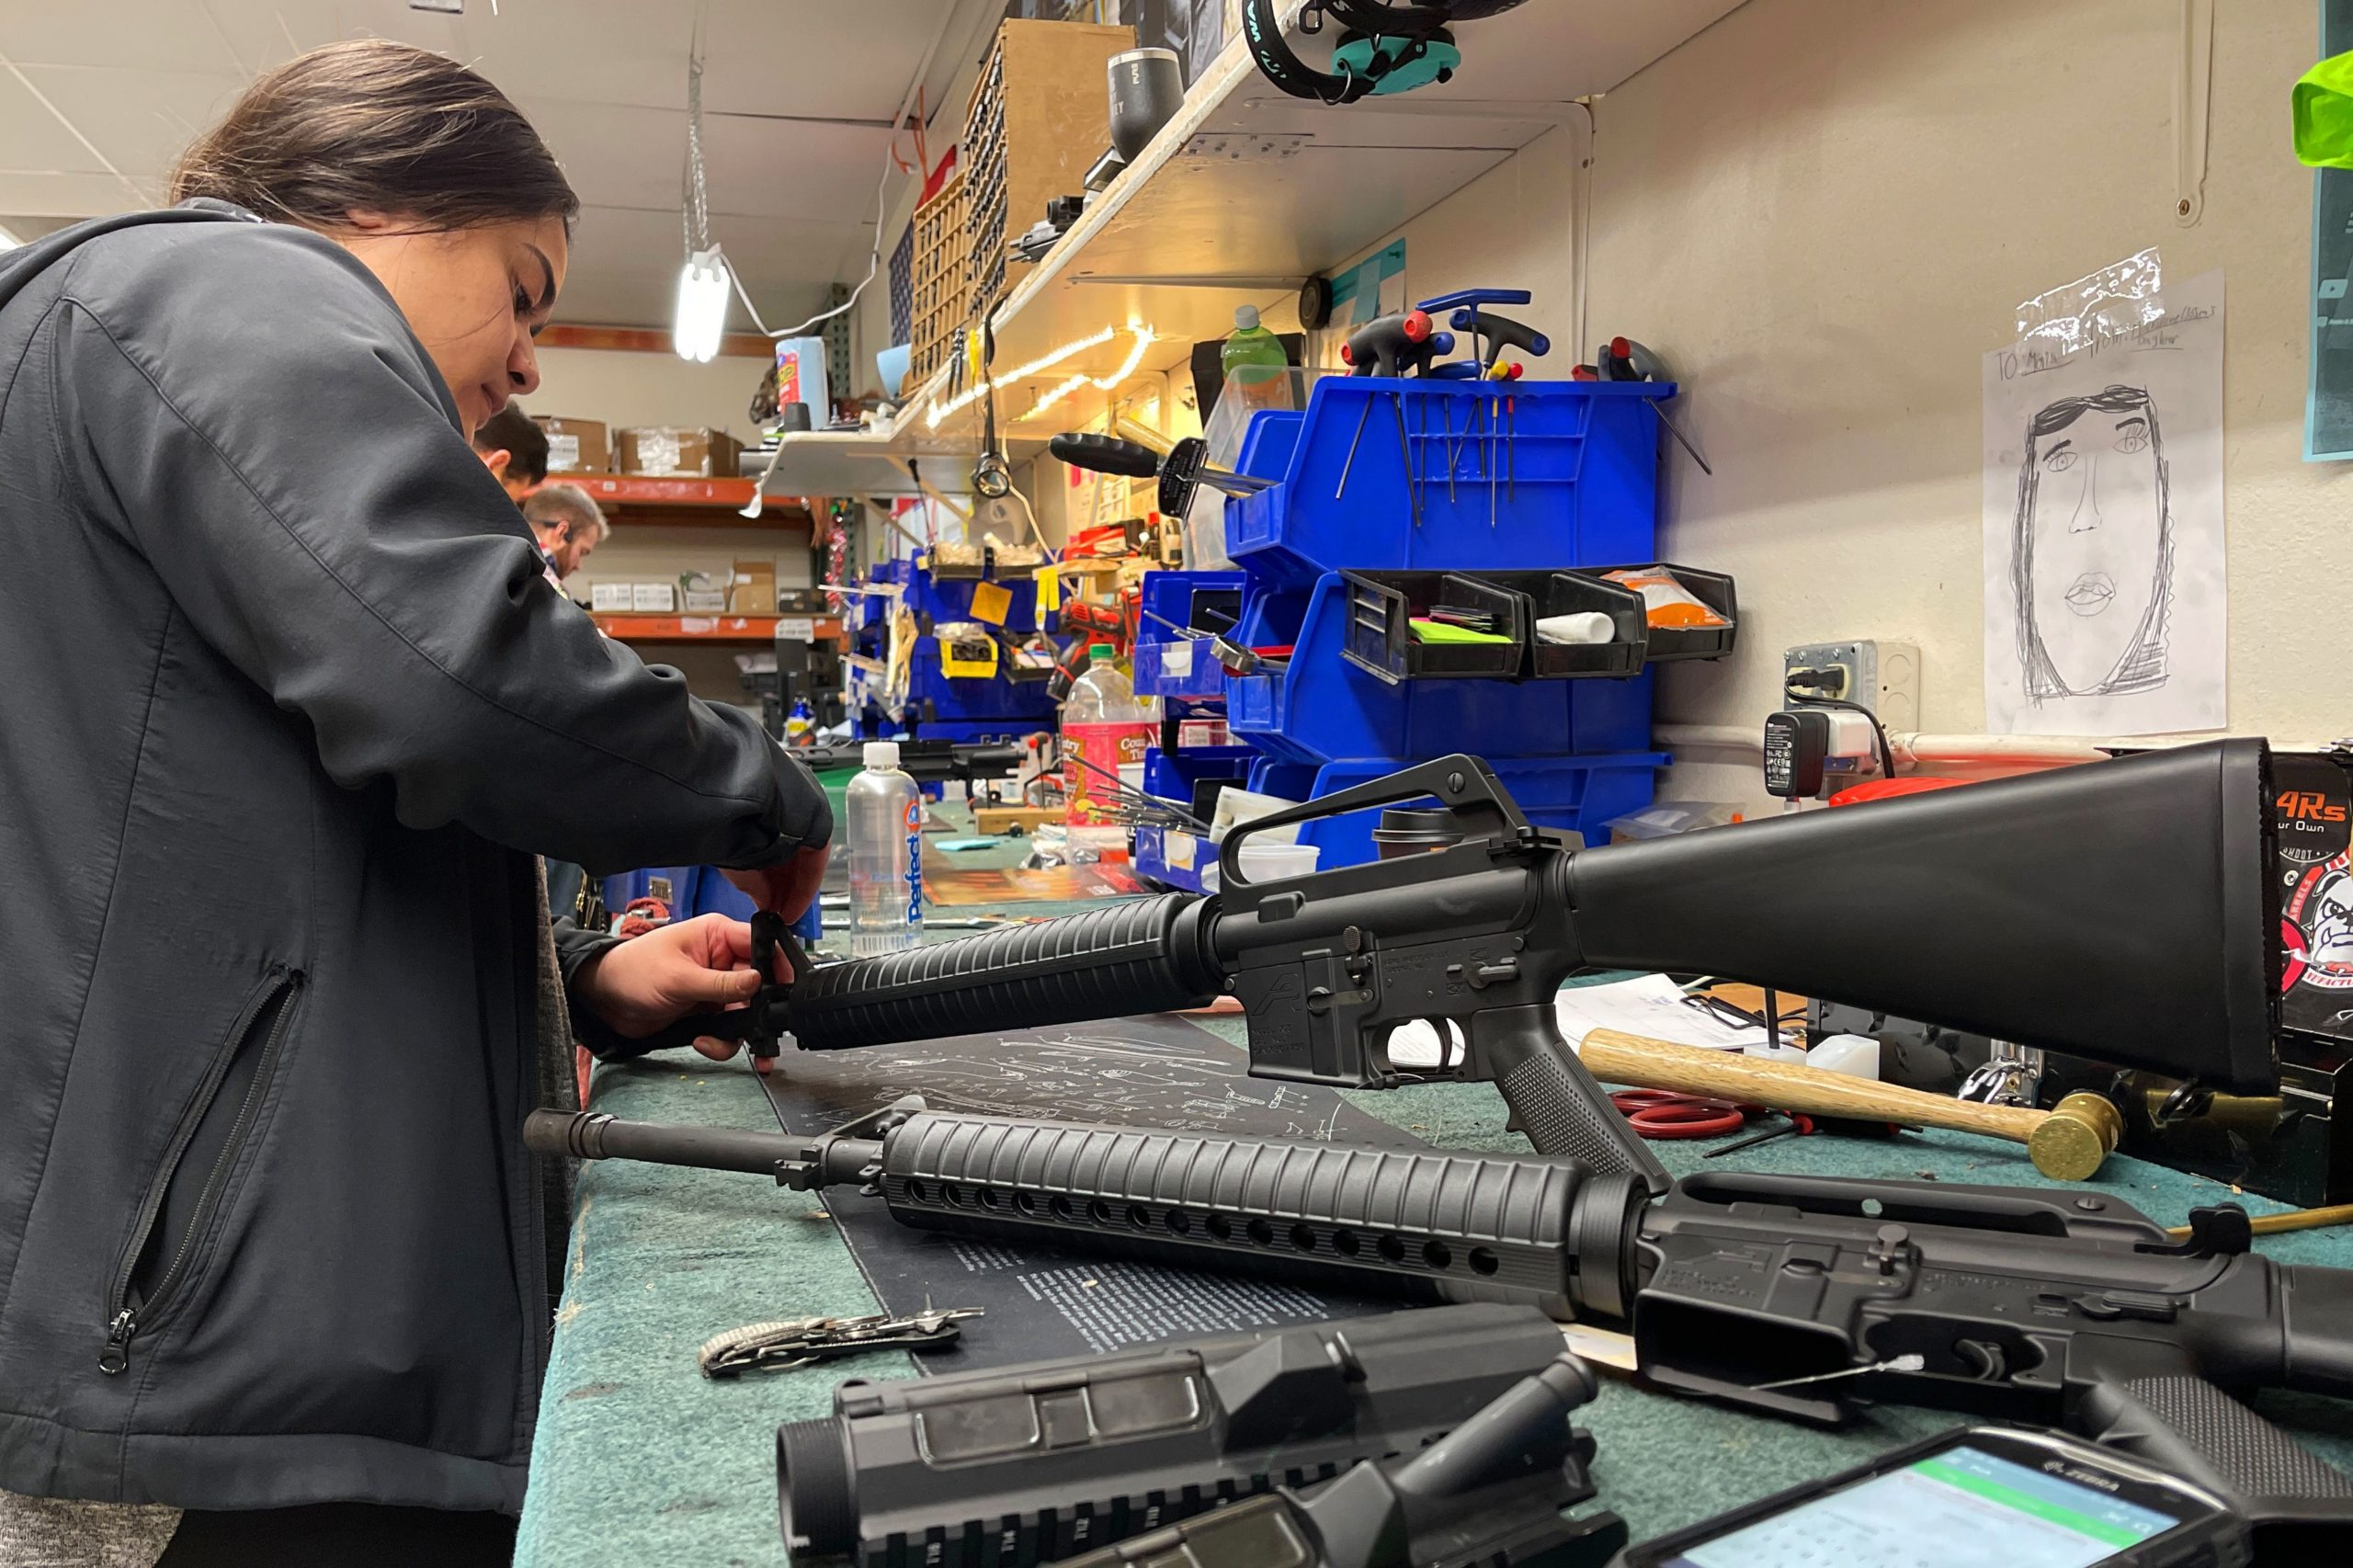 A worker assembles AR-15 style rifles at Davidson Defense in Orem, Utah on February 4, 2021. - Gun merchants sold more than 2 million firearms in January, a 75% increase over the estimated 1.2 million guns sold in January 2020, according to the National Shooting Sports Federation, a firearms industry trade group. The FBI said it conducted a record 4.3 million background checks in January. If that pace continues, the bureau will complete more than 50 million gun-related background checks by the end of the year, shattering the current record set in 2020, according to a new report from Bespoke Investment Group. (Photo by GEORGE FREY / AFP) (Photo by GEORGE FREY/AFP via Getty Images)